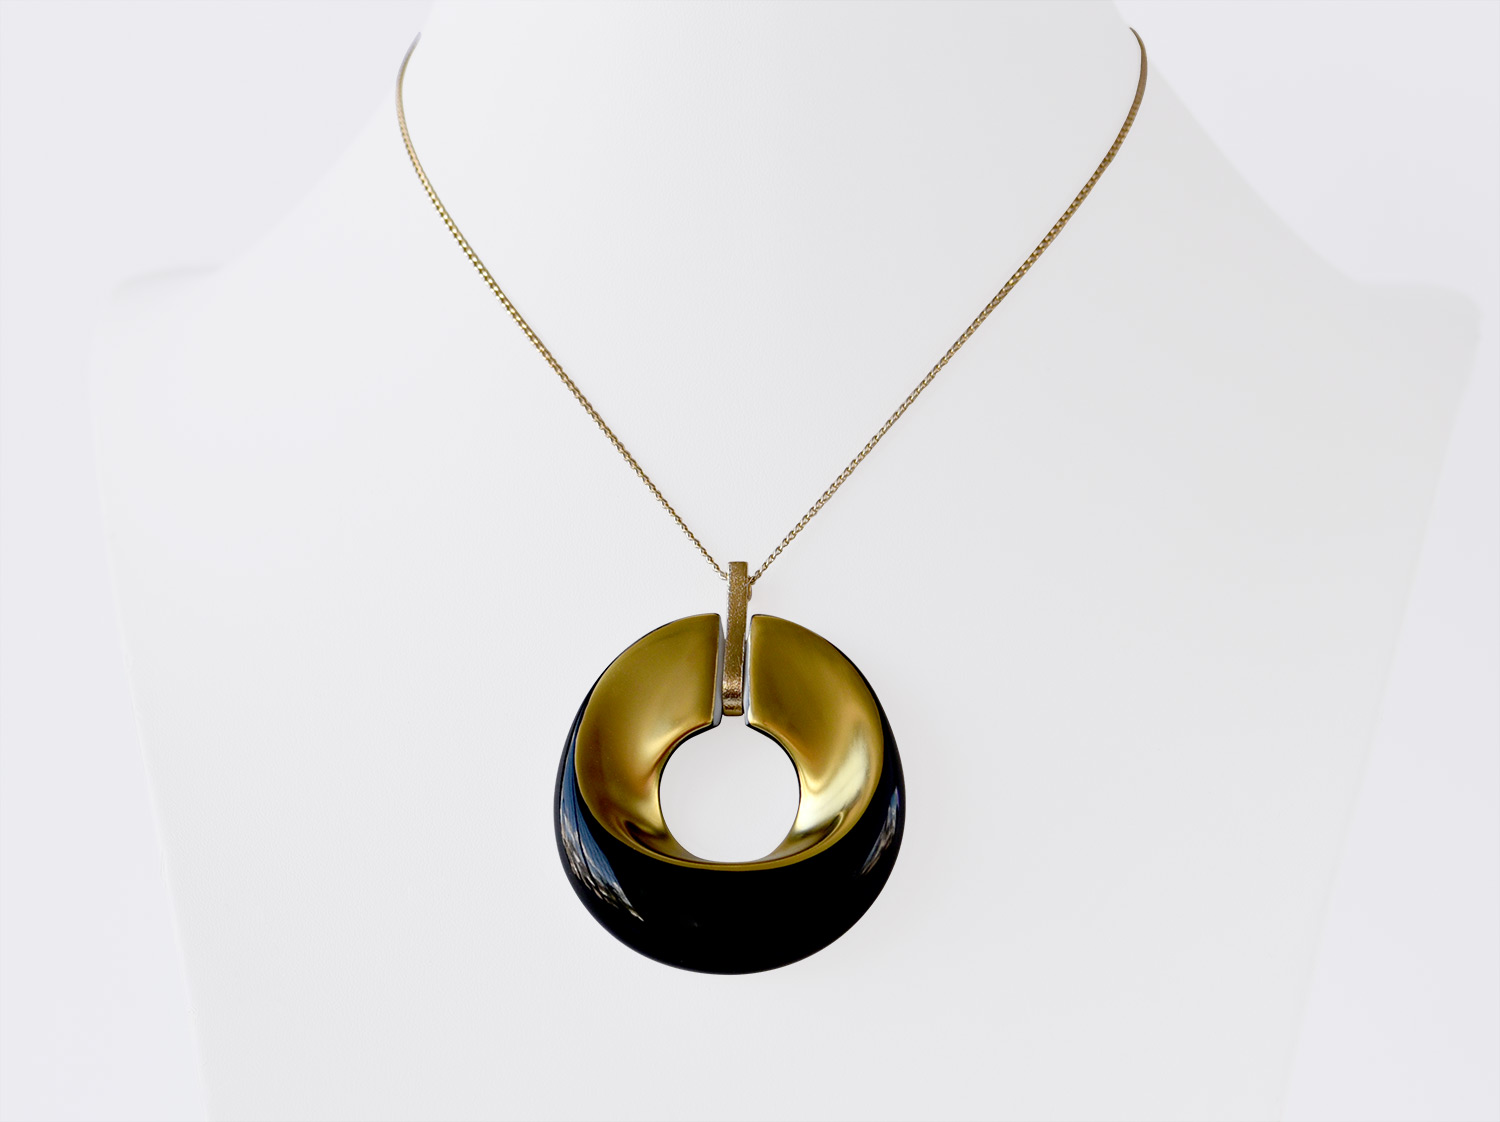 China Pendant of the collection ALBA NOIR ET OR | Bernardaud